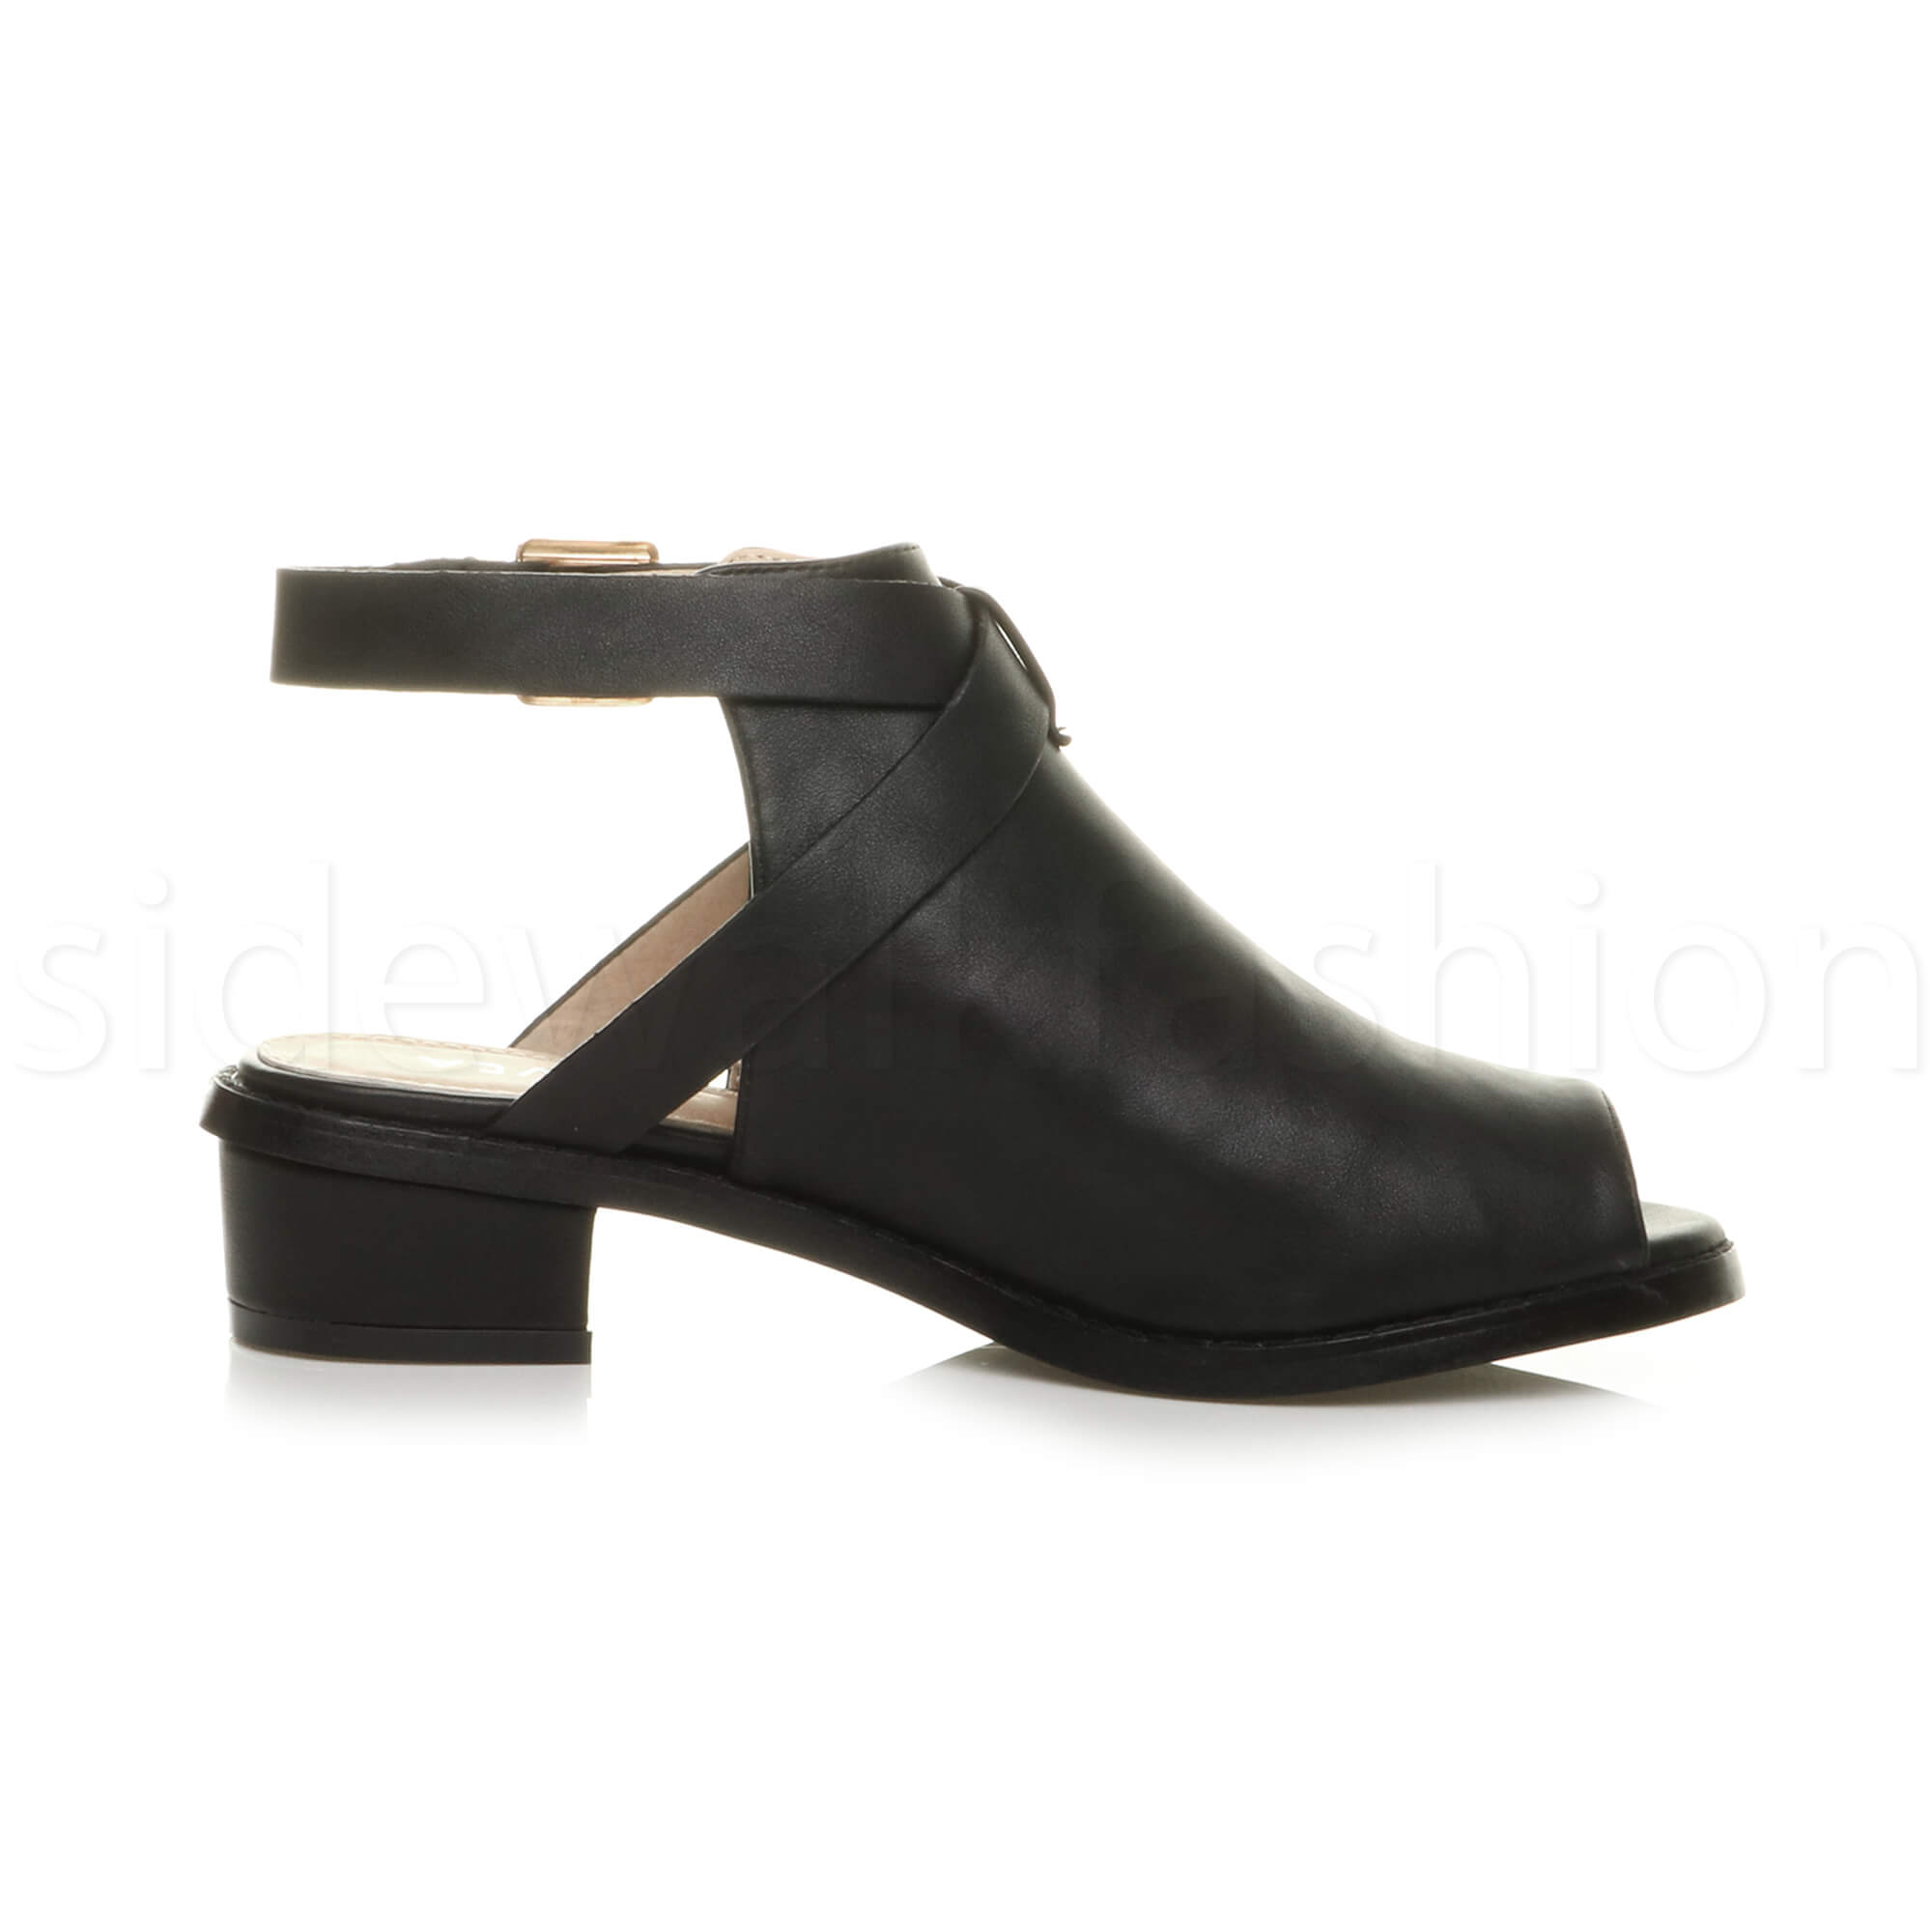 Womens-ladies-low-mid-heel-strap-open-backless-peep-toe-boots-sandals-shoes-size thumbnail 4